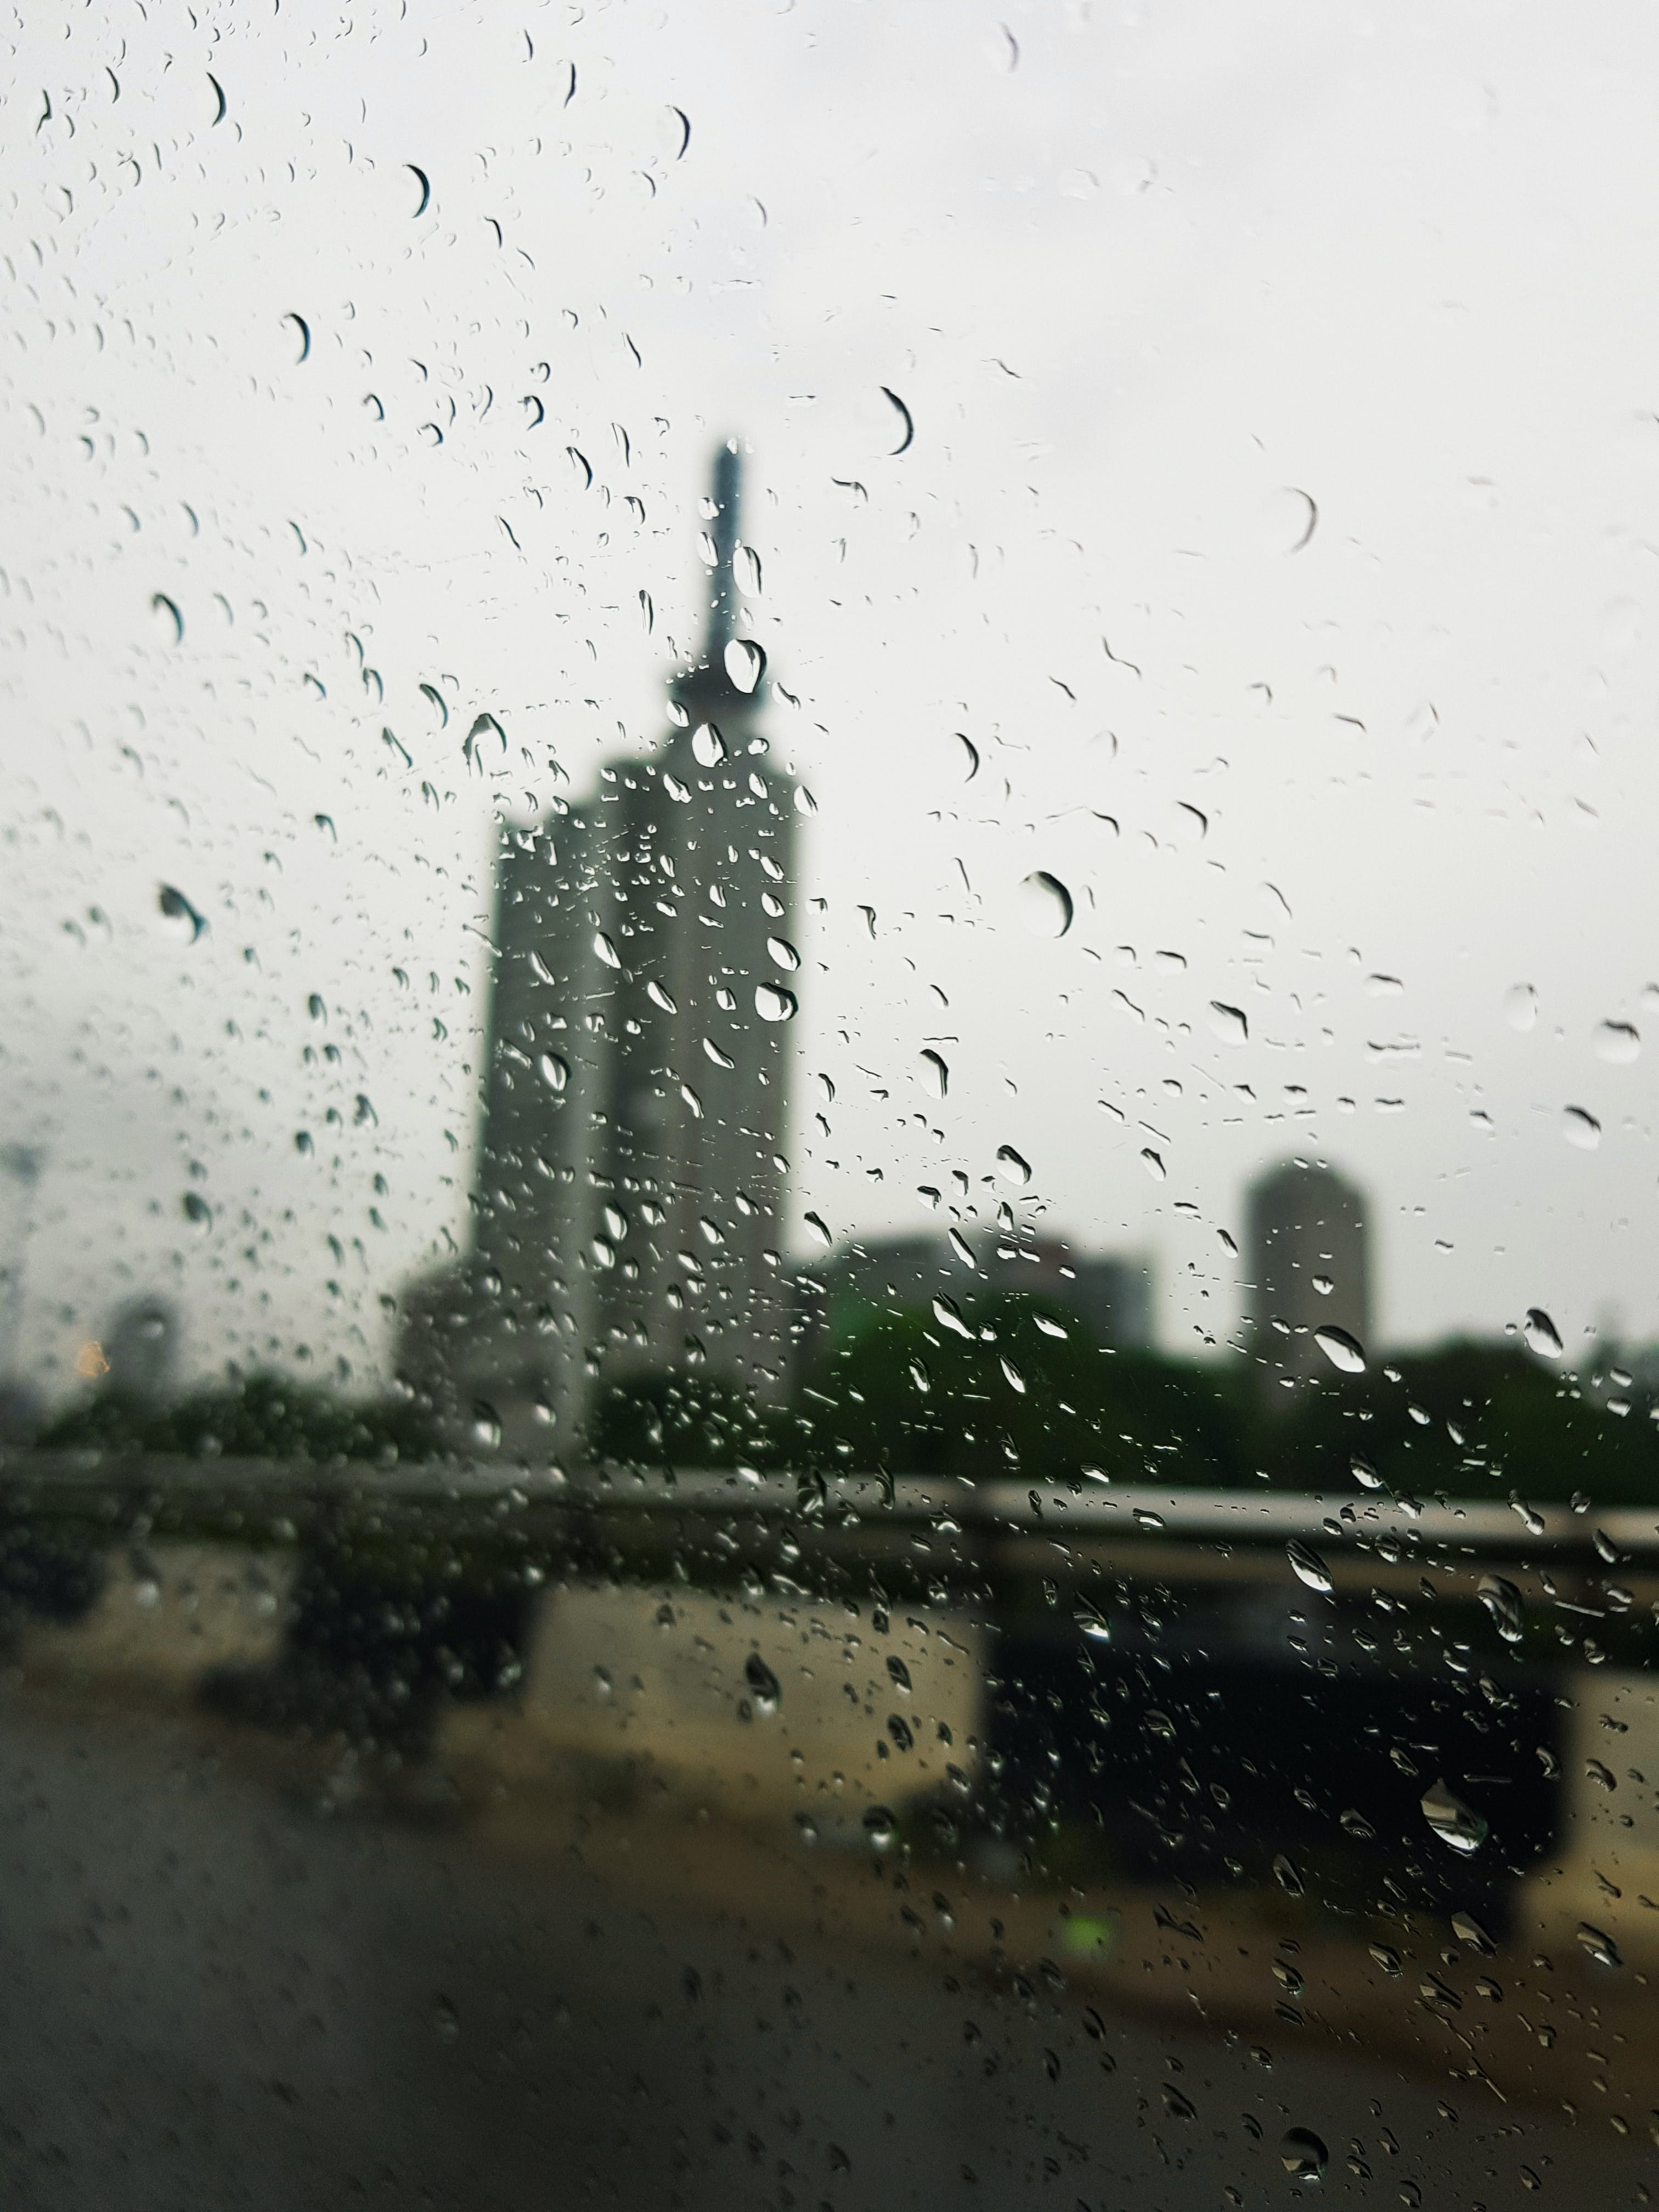 Free stock photo of city, focus, glass window, out of focus